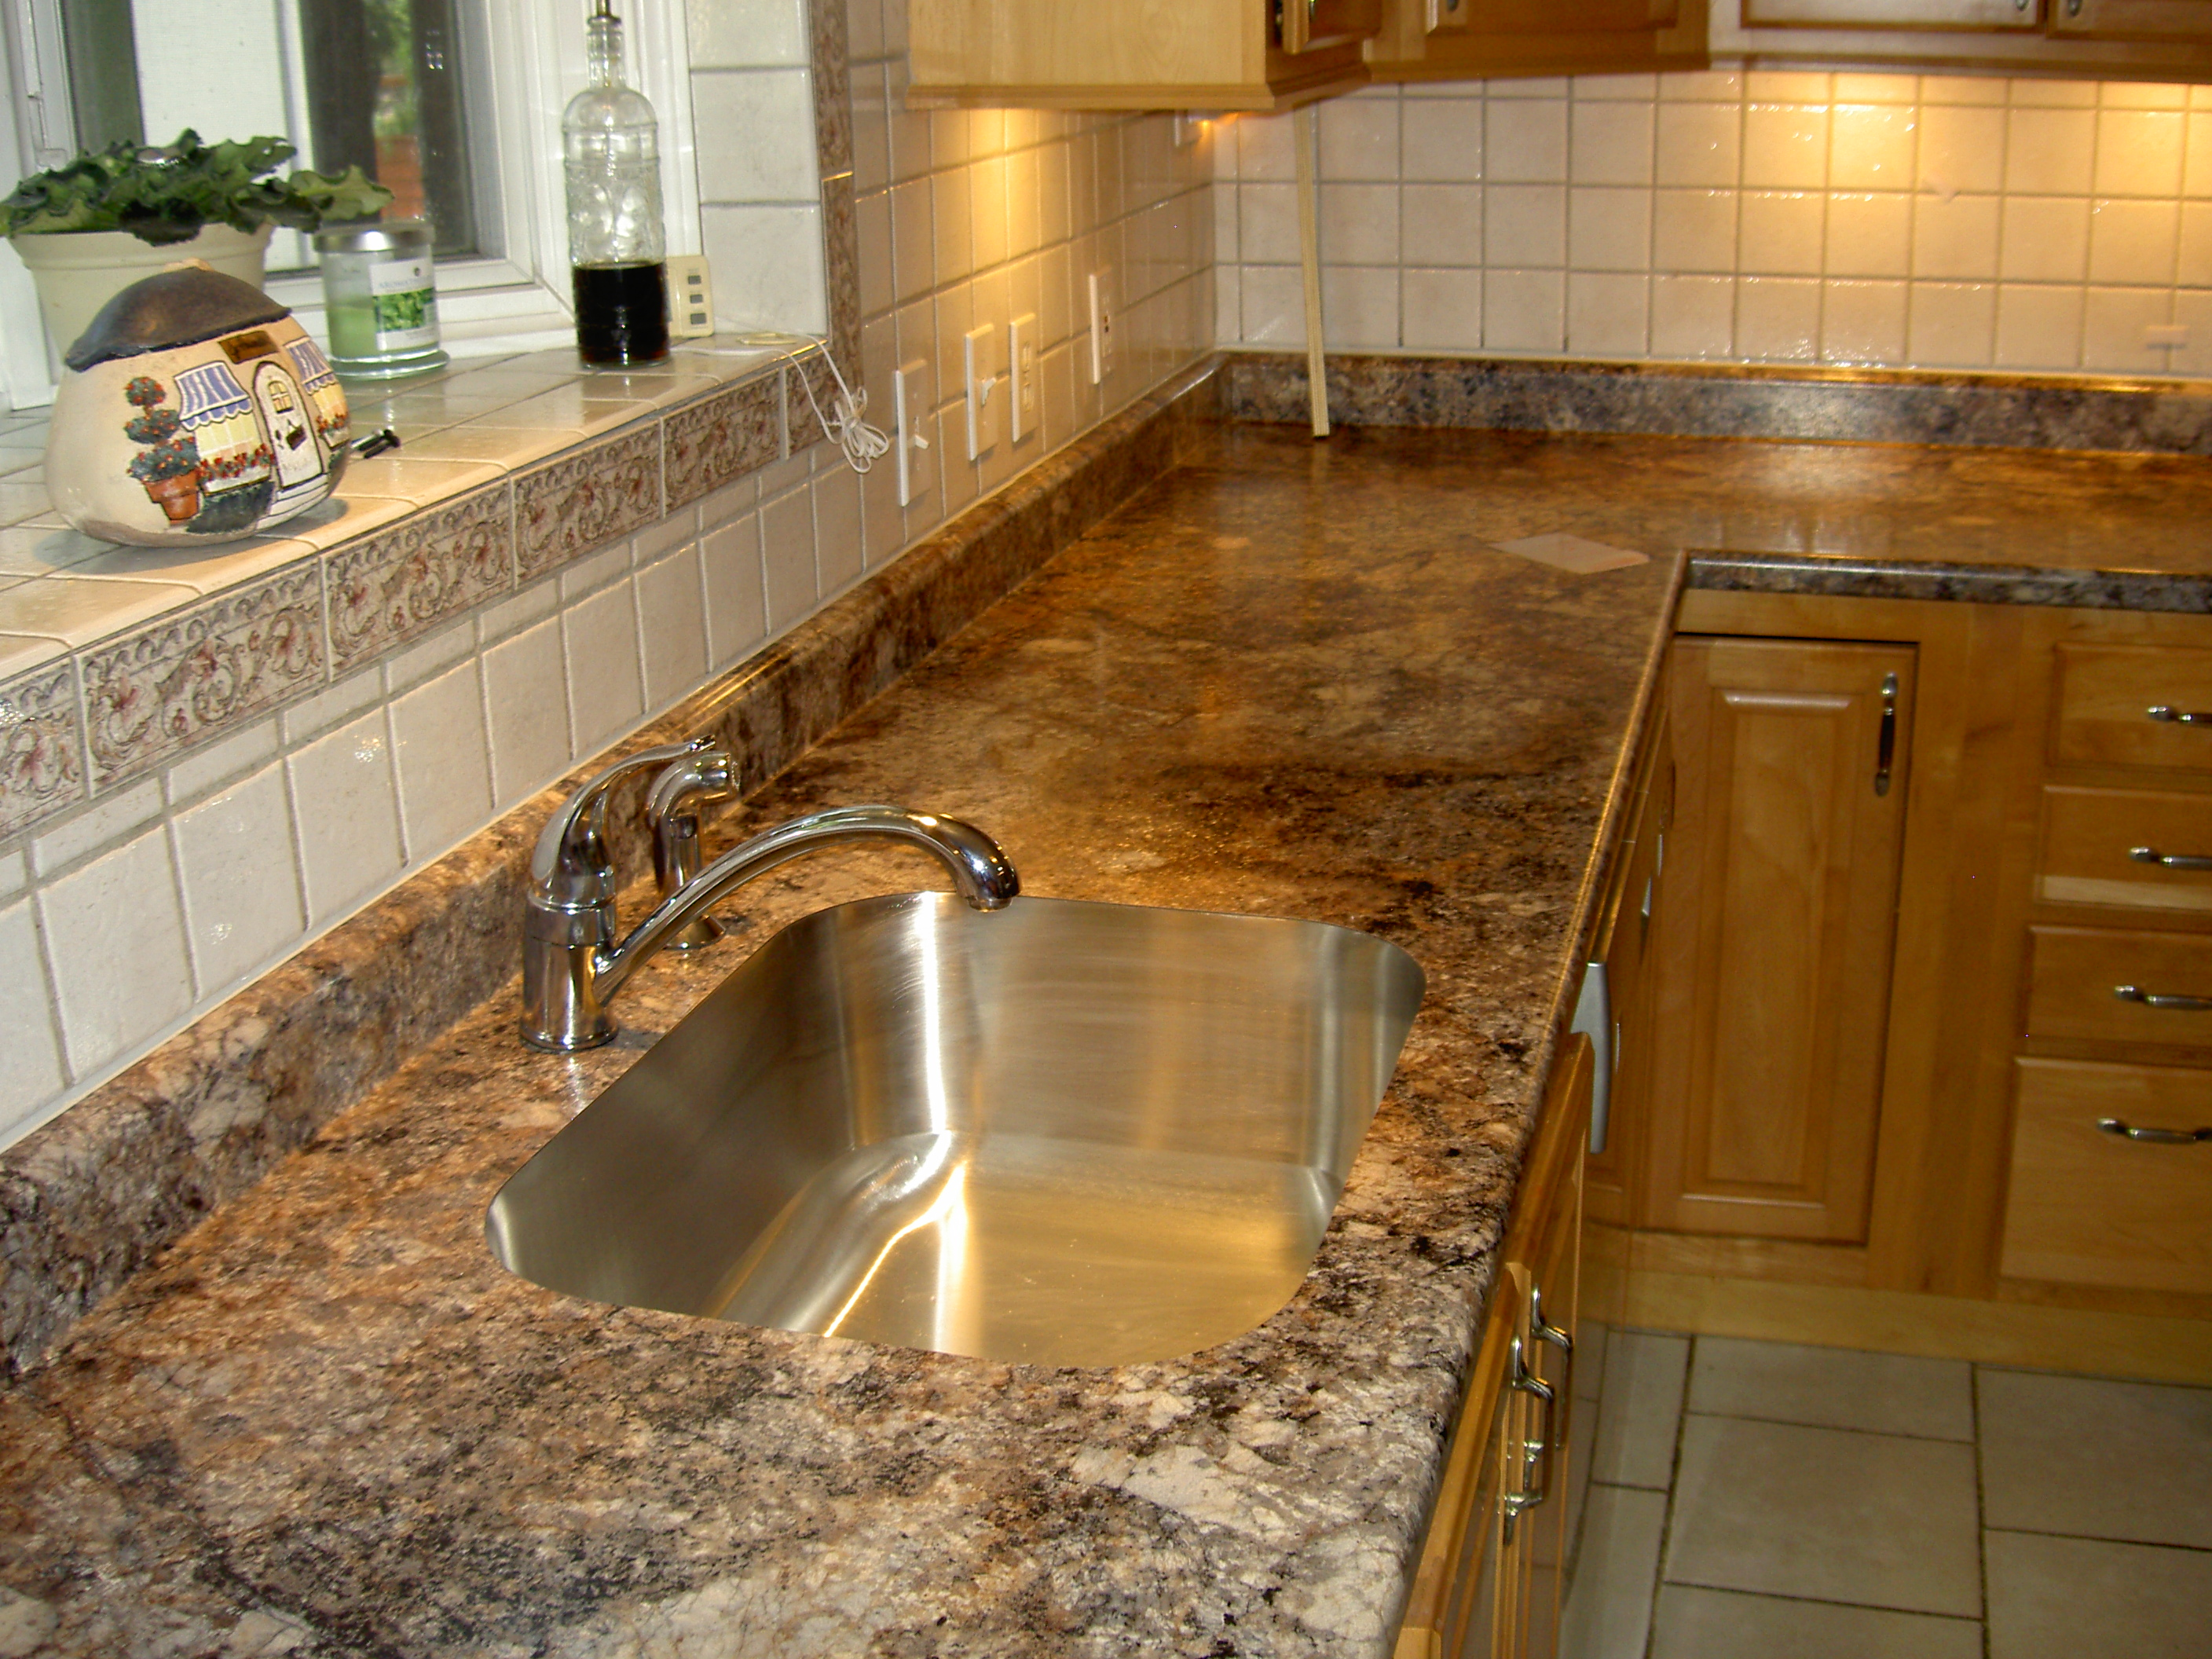 lamtop kitchen laminate countertops LAMINATE COUNTERTOPS